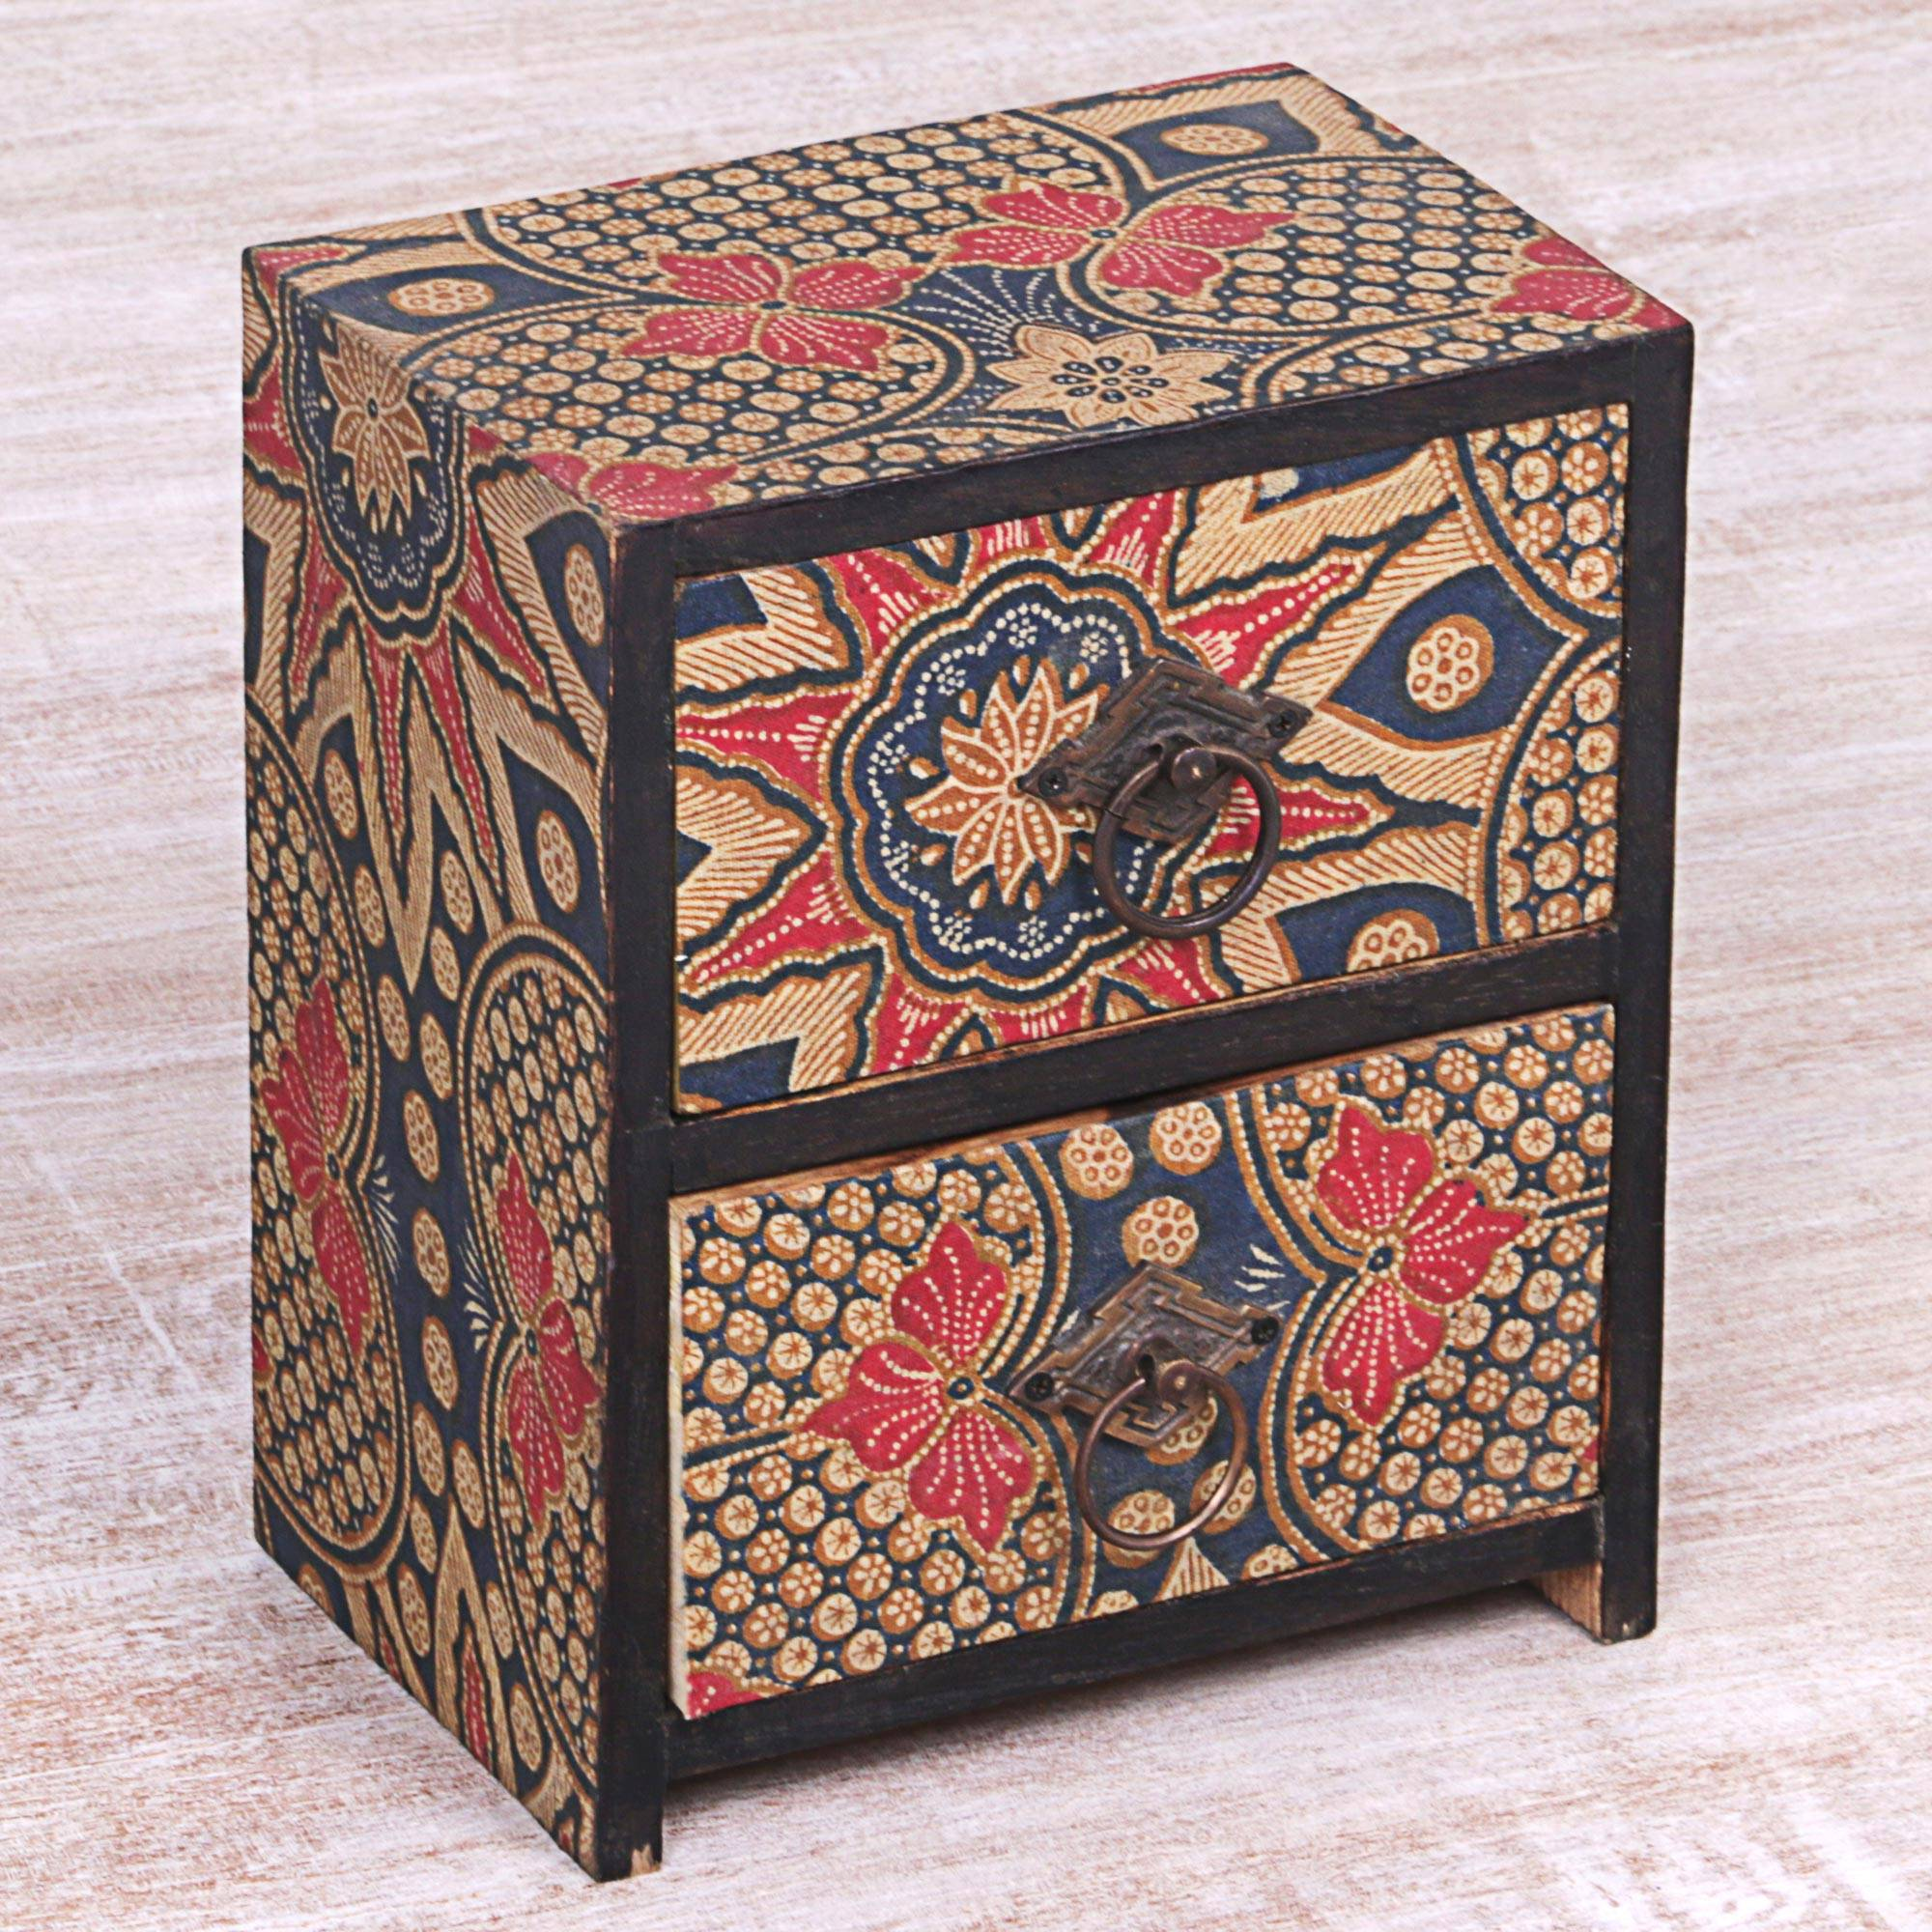 reputable site 605ee 2ce25 Batik Flowers Fabric Covered Wood Mini Chest with 2 Drawers, 'Batik  Blossoms'